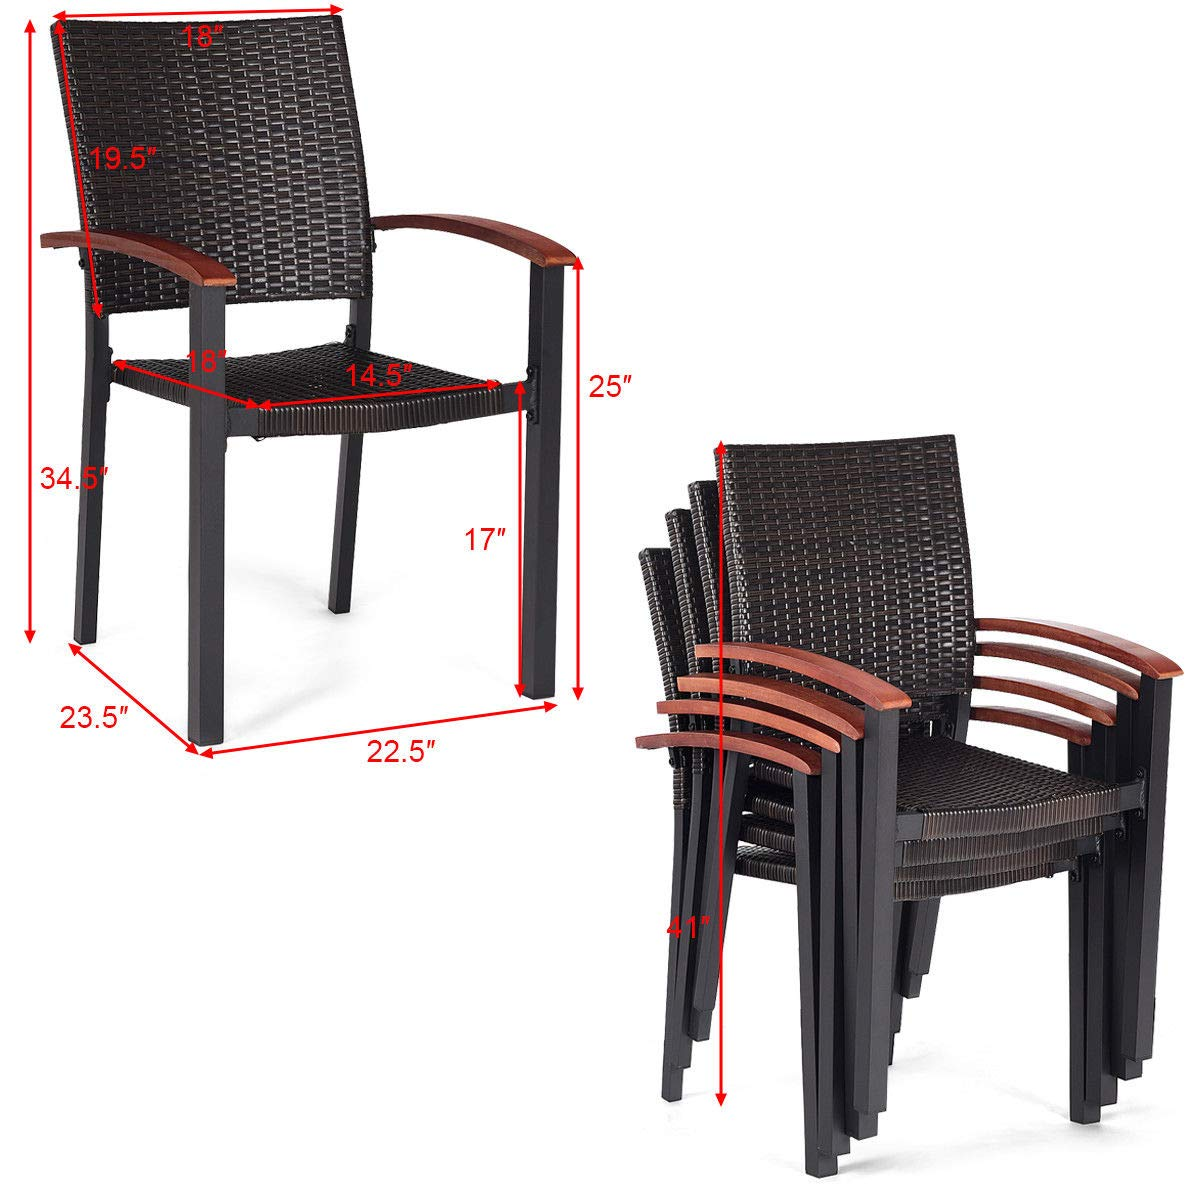 Amazon.com: 4 sillas de comedor de ratán para patio ...